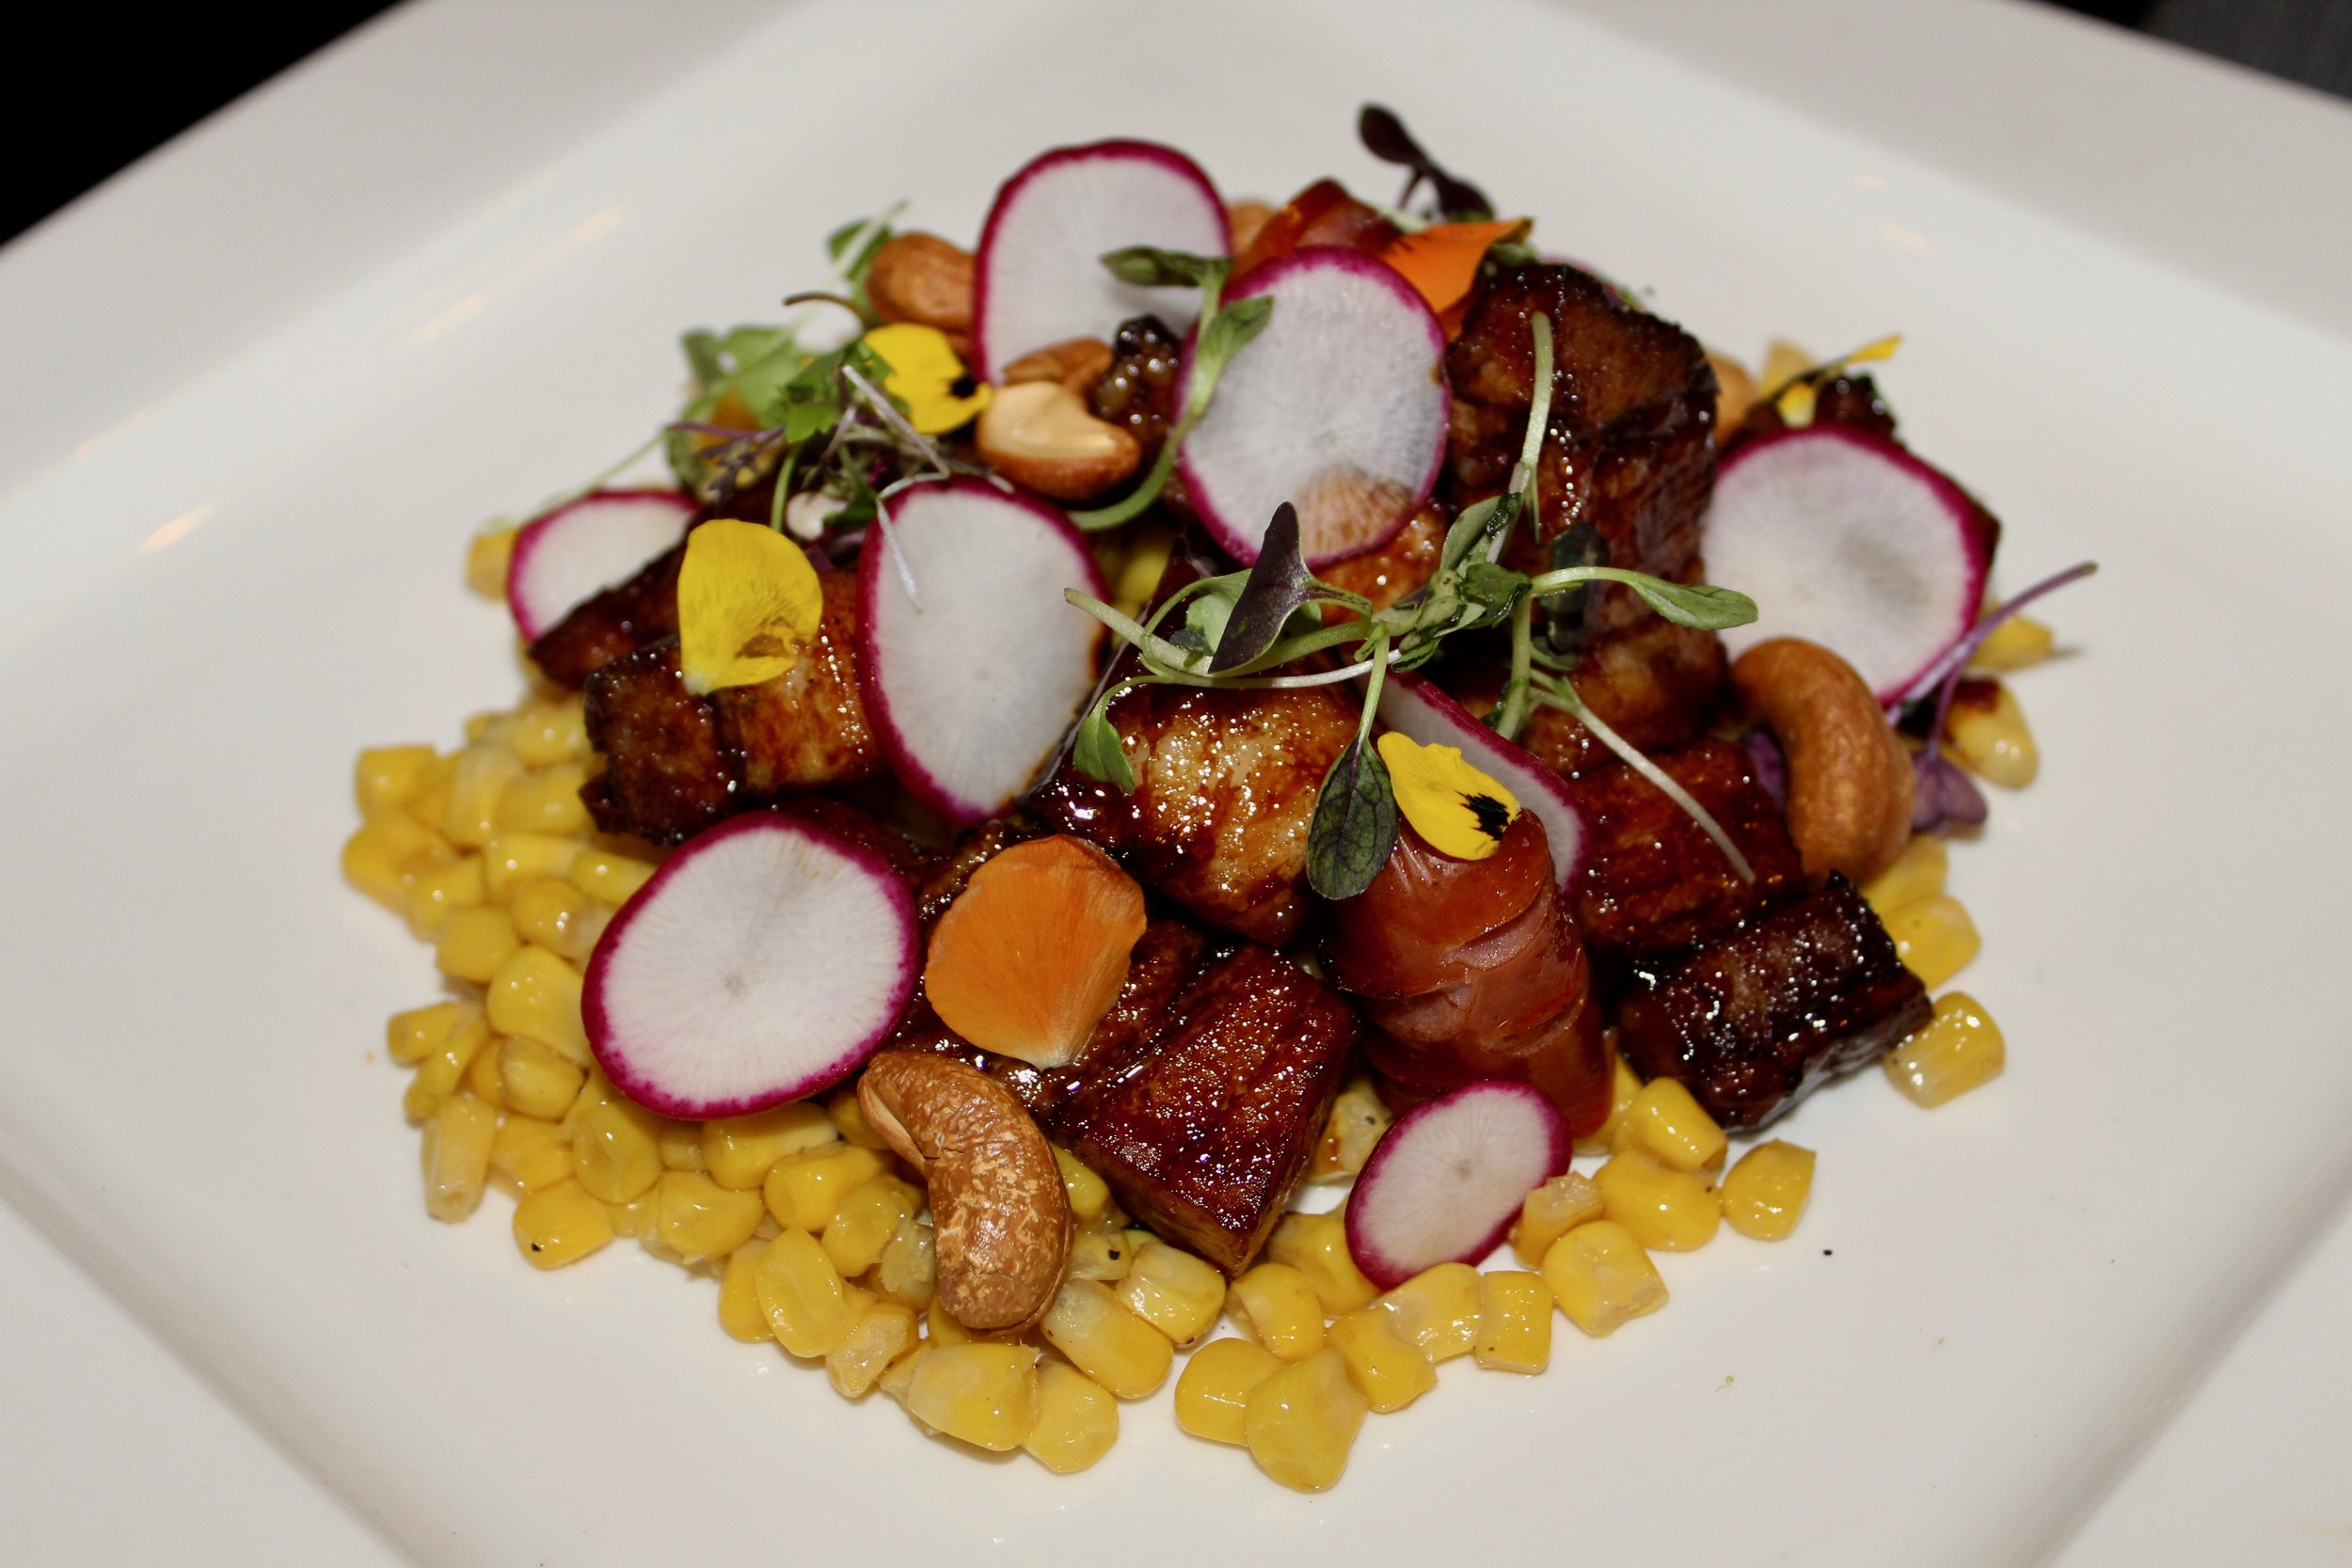 Braised Pork with pork sausage and radishes on a bed of sweet corn.